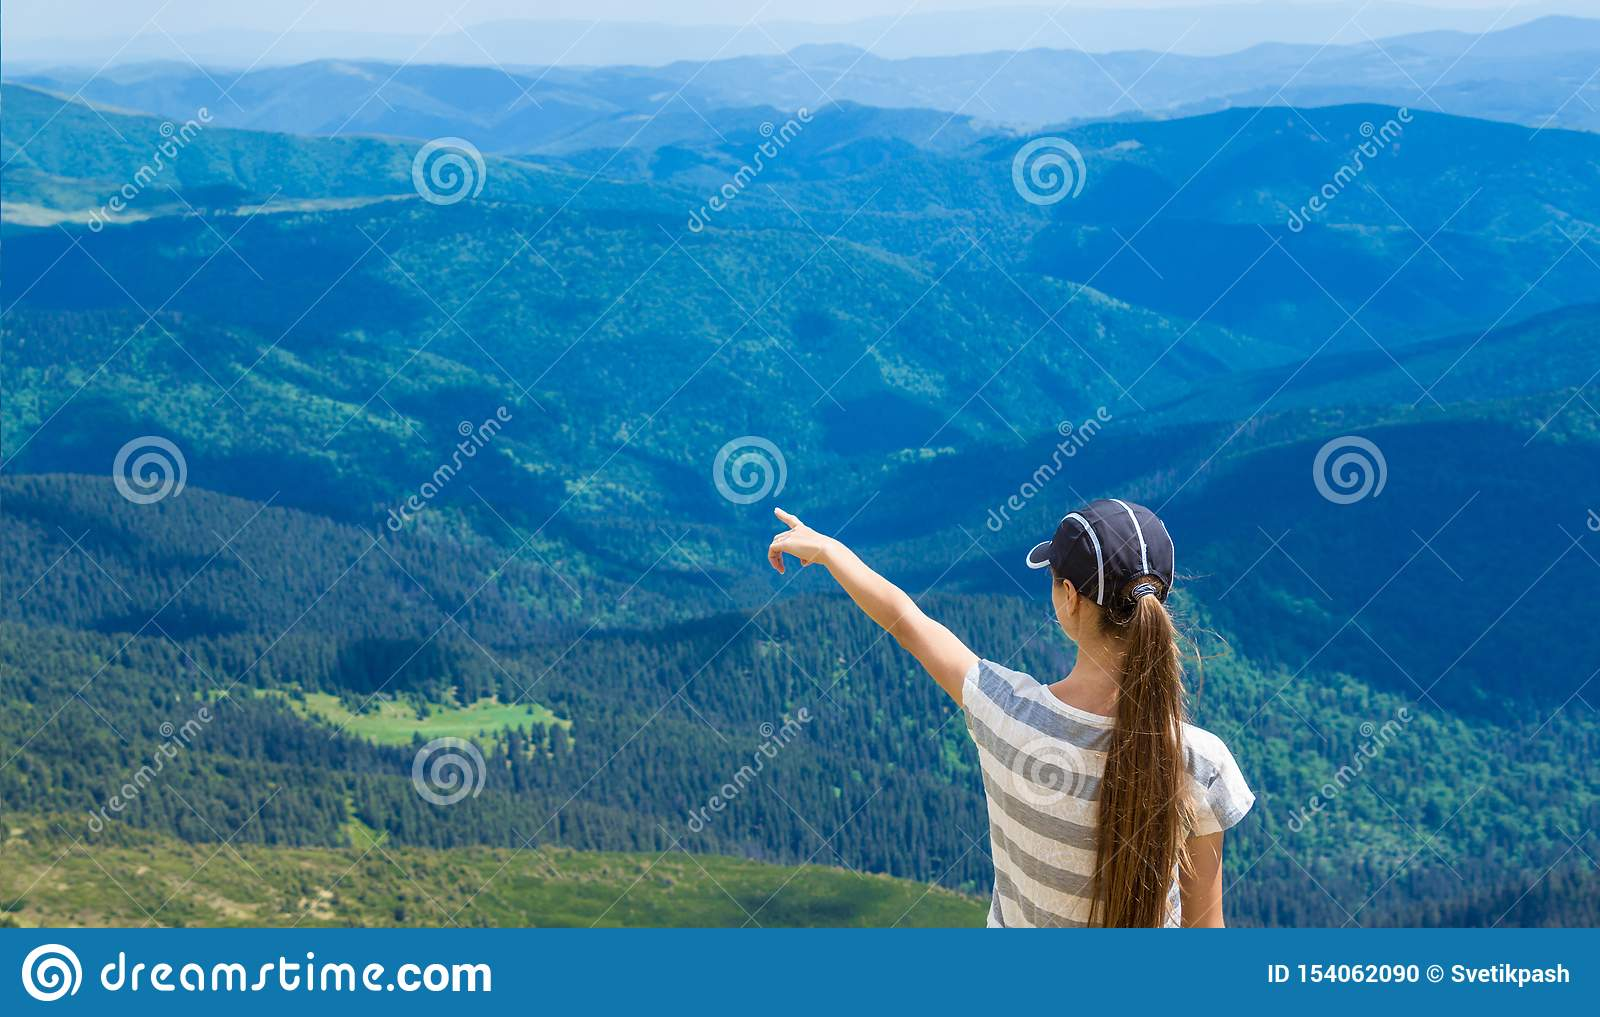 Woman hiking pointing to the sky enjoy the beautiful view at mountain